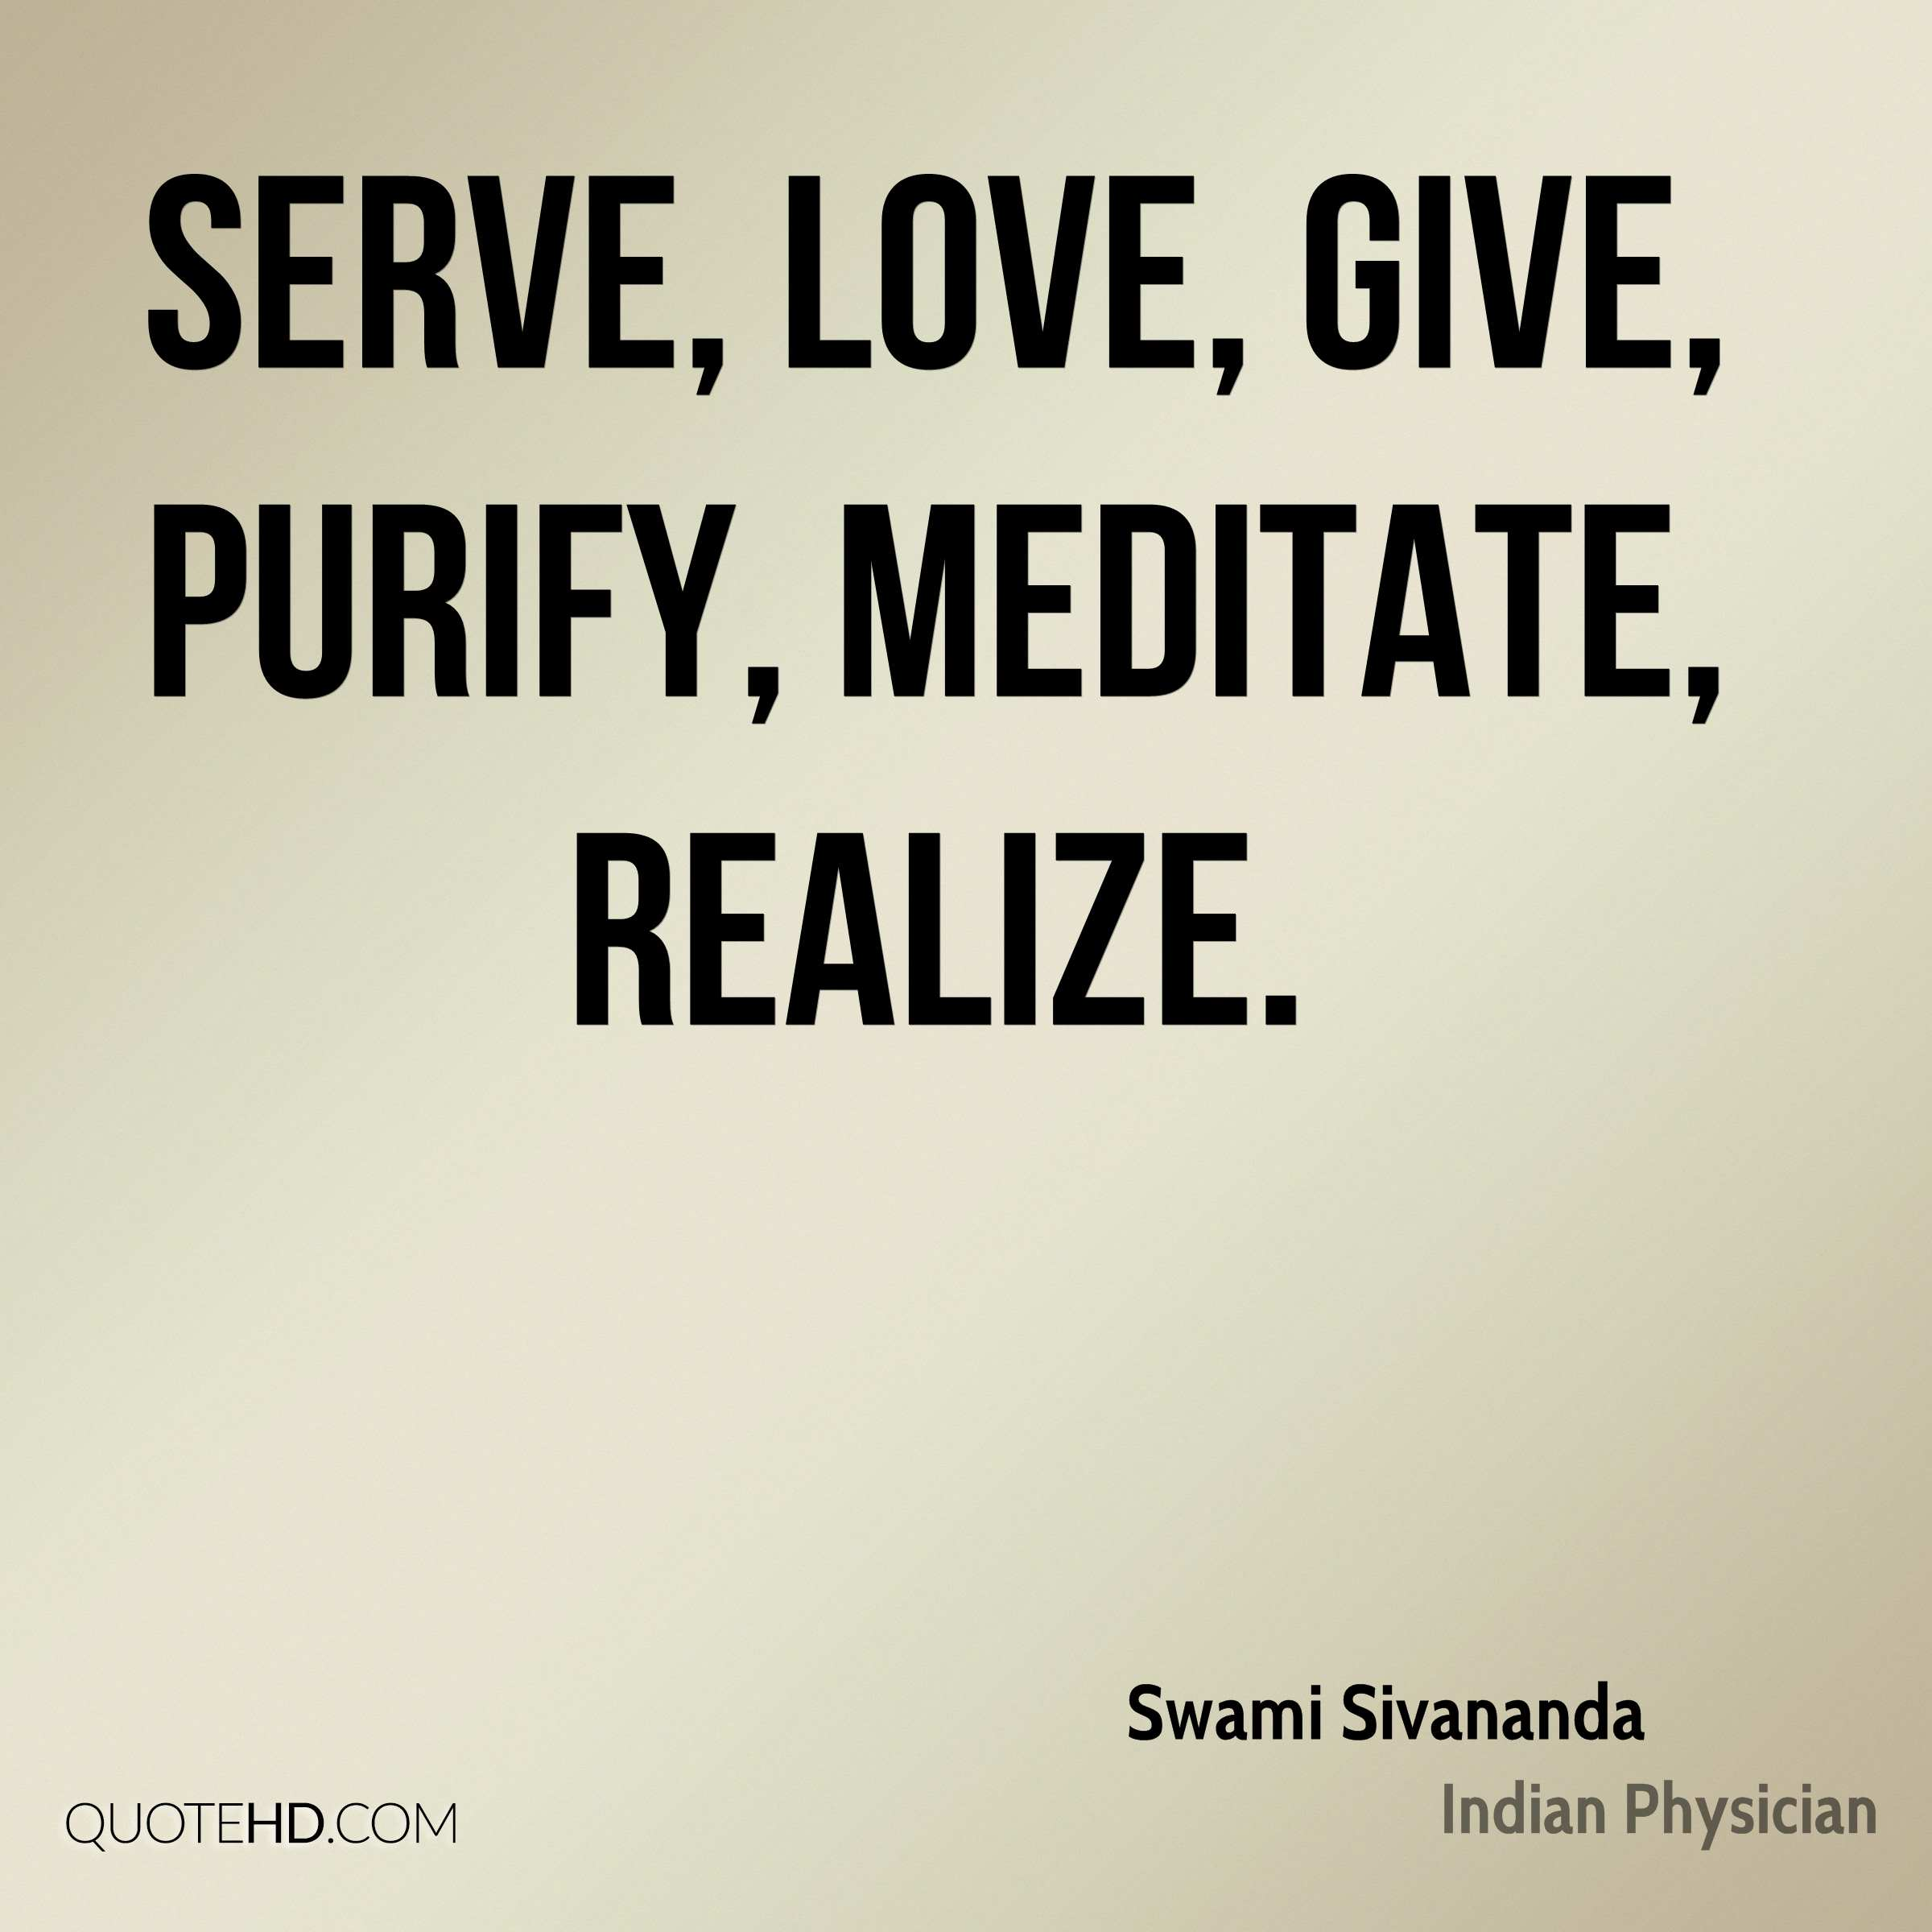 Serve, Love, Give, Purify, Meditate, Realize.